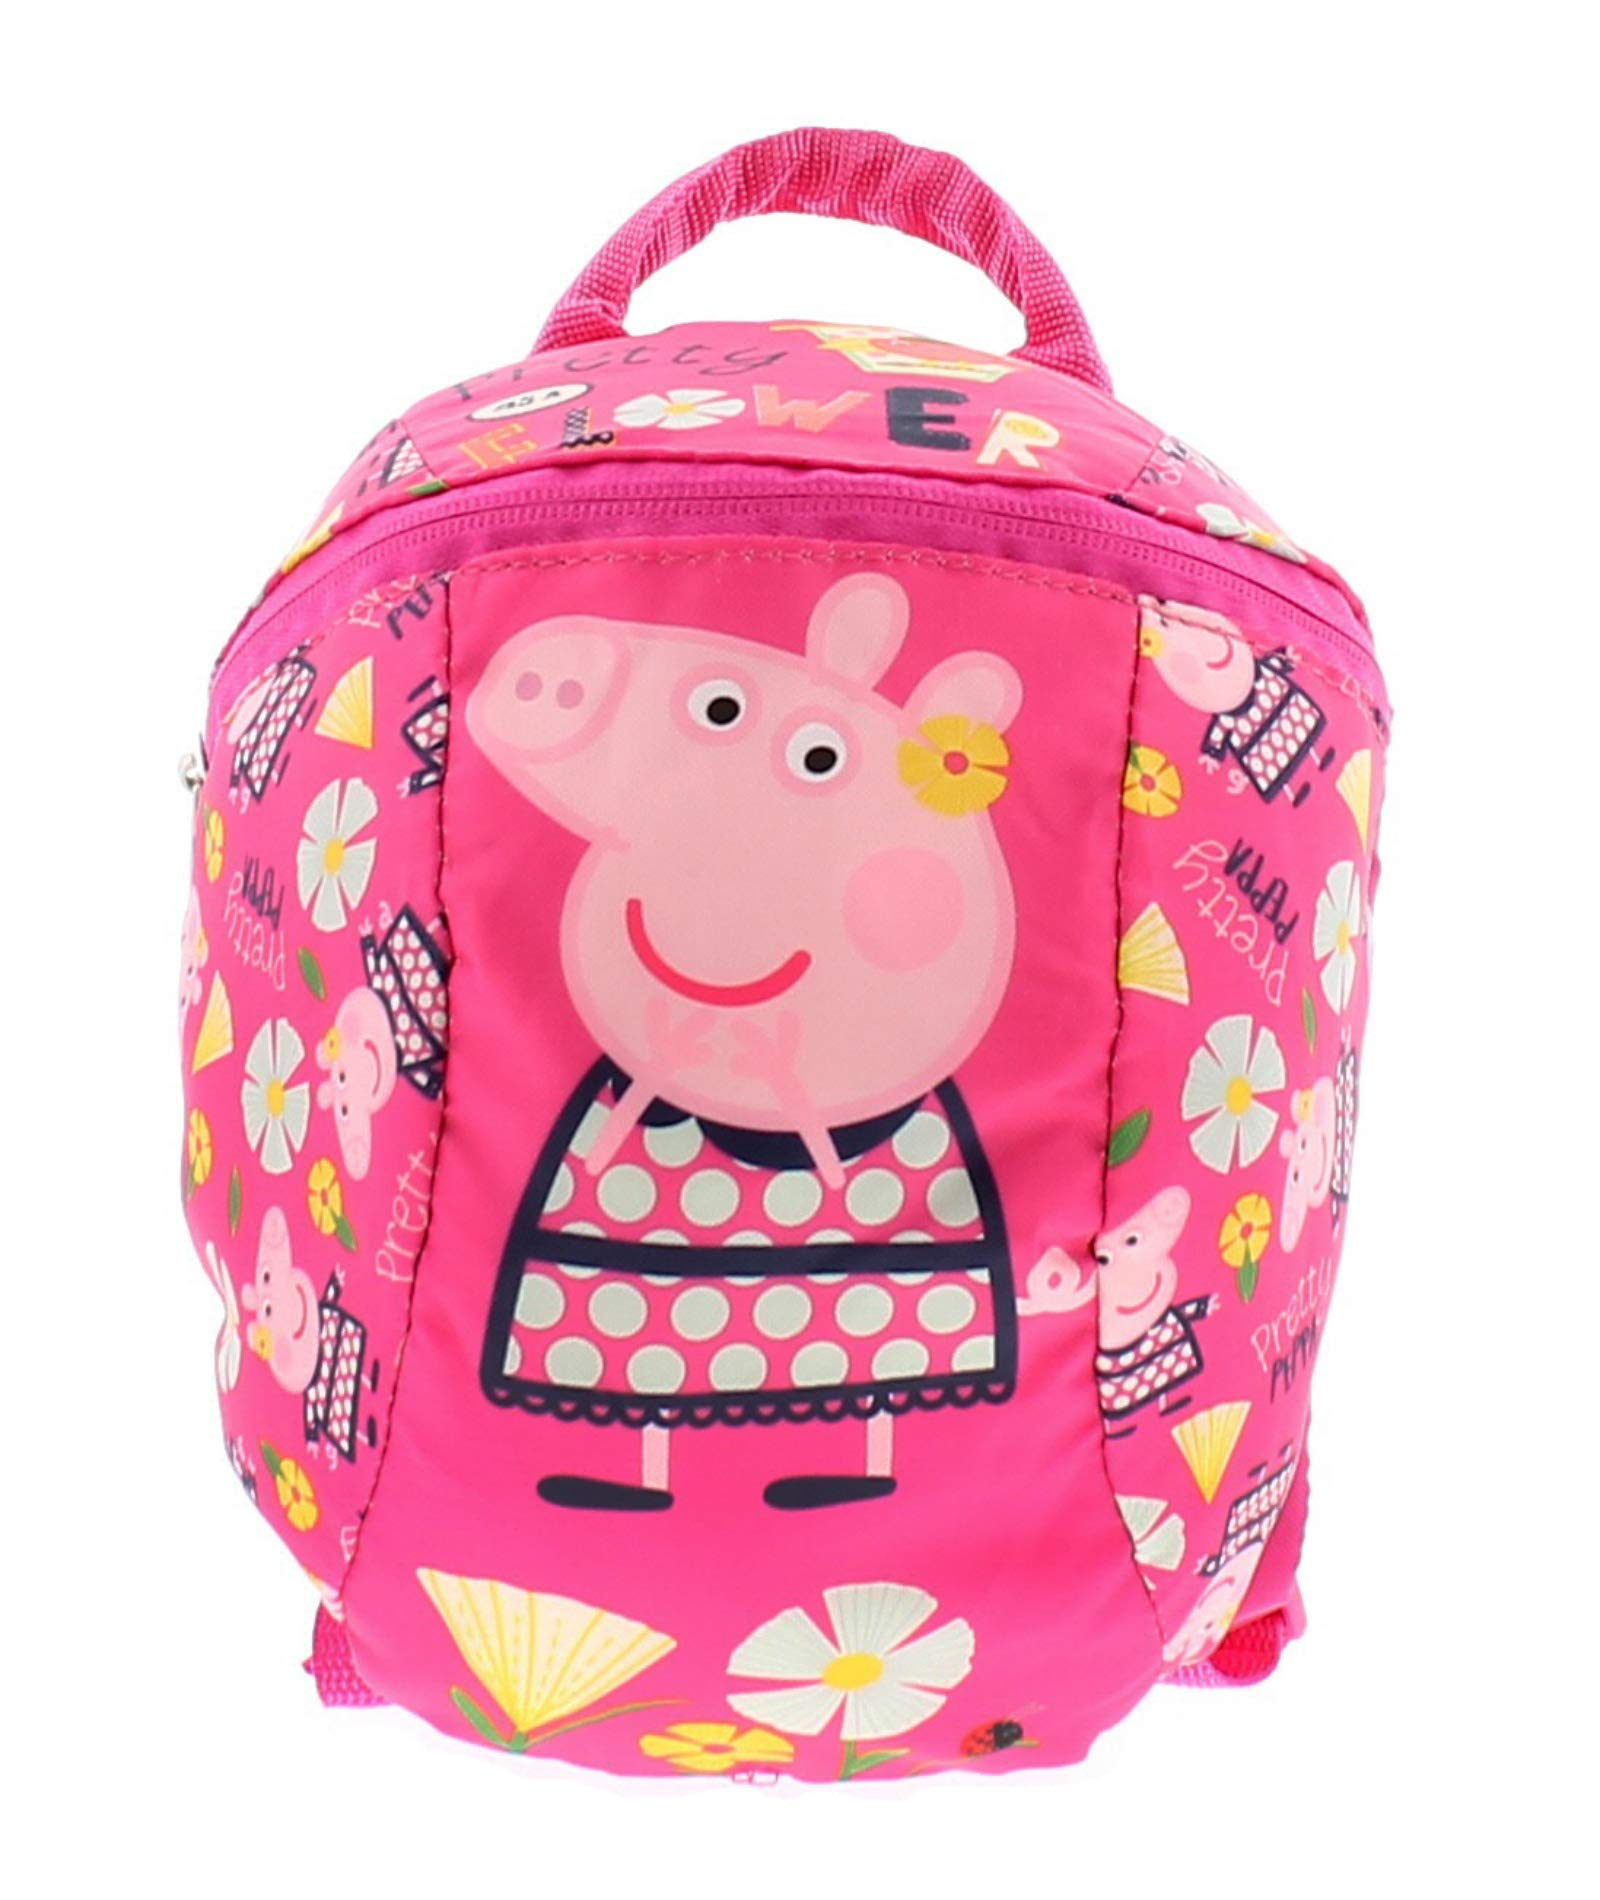 71p%2B0lVCeLL - Peppa Pig Backpack Mochila Infantil, 32 Centimeters